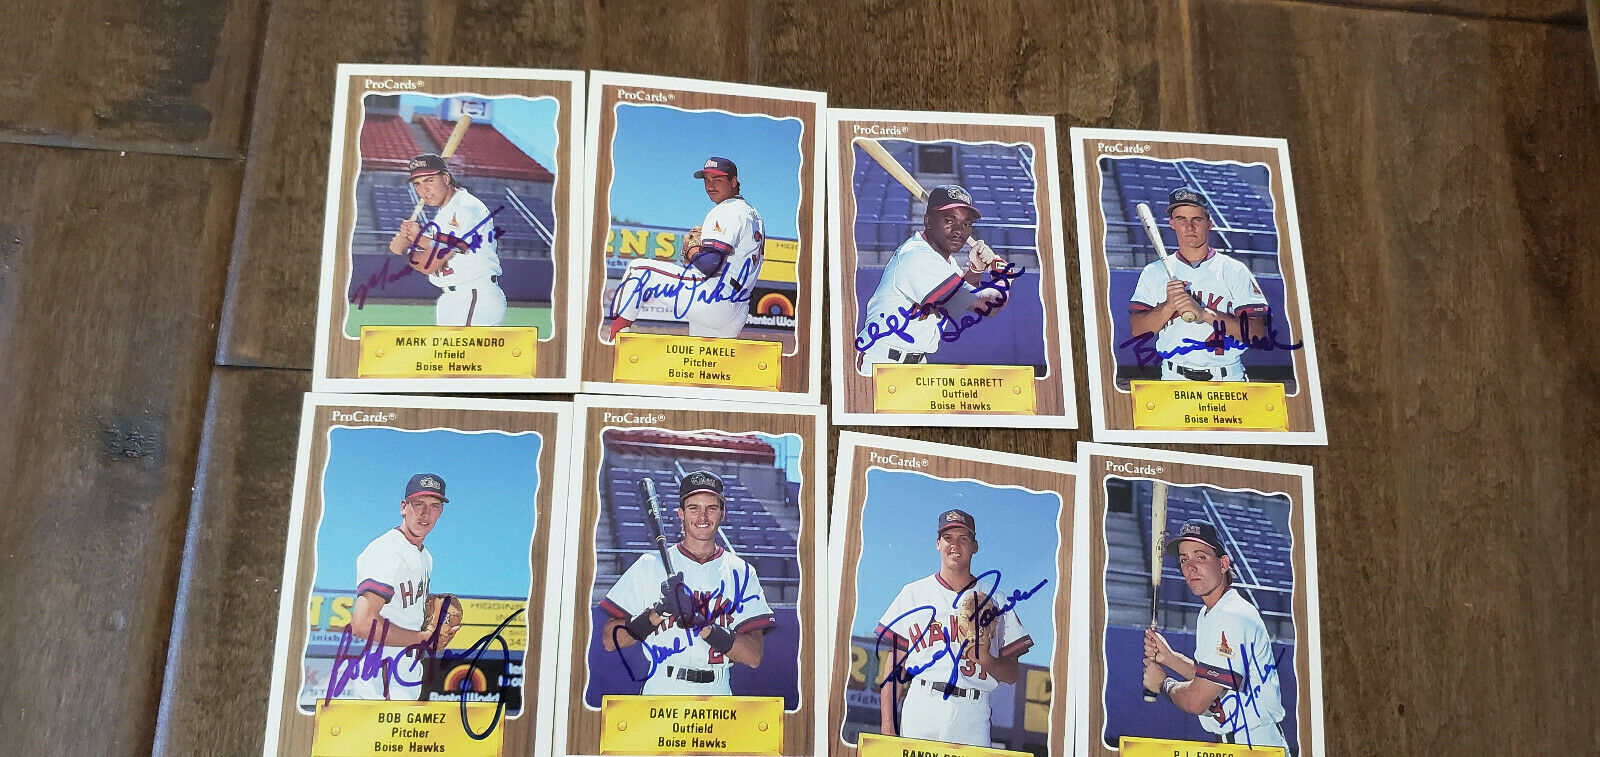 Primary image for 1990 Procards Boise Hawks Angels signed auto card lot of 8 P.J Forbes